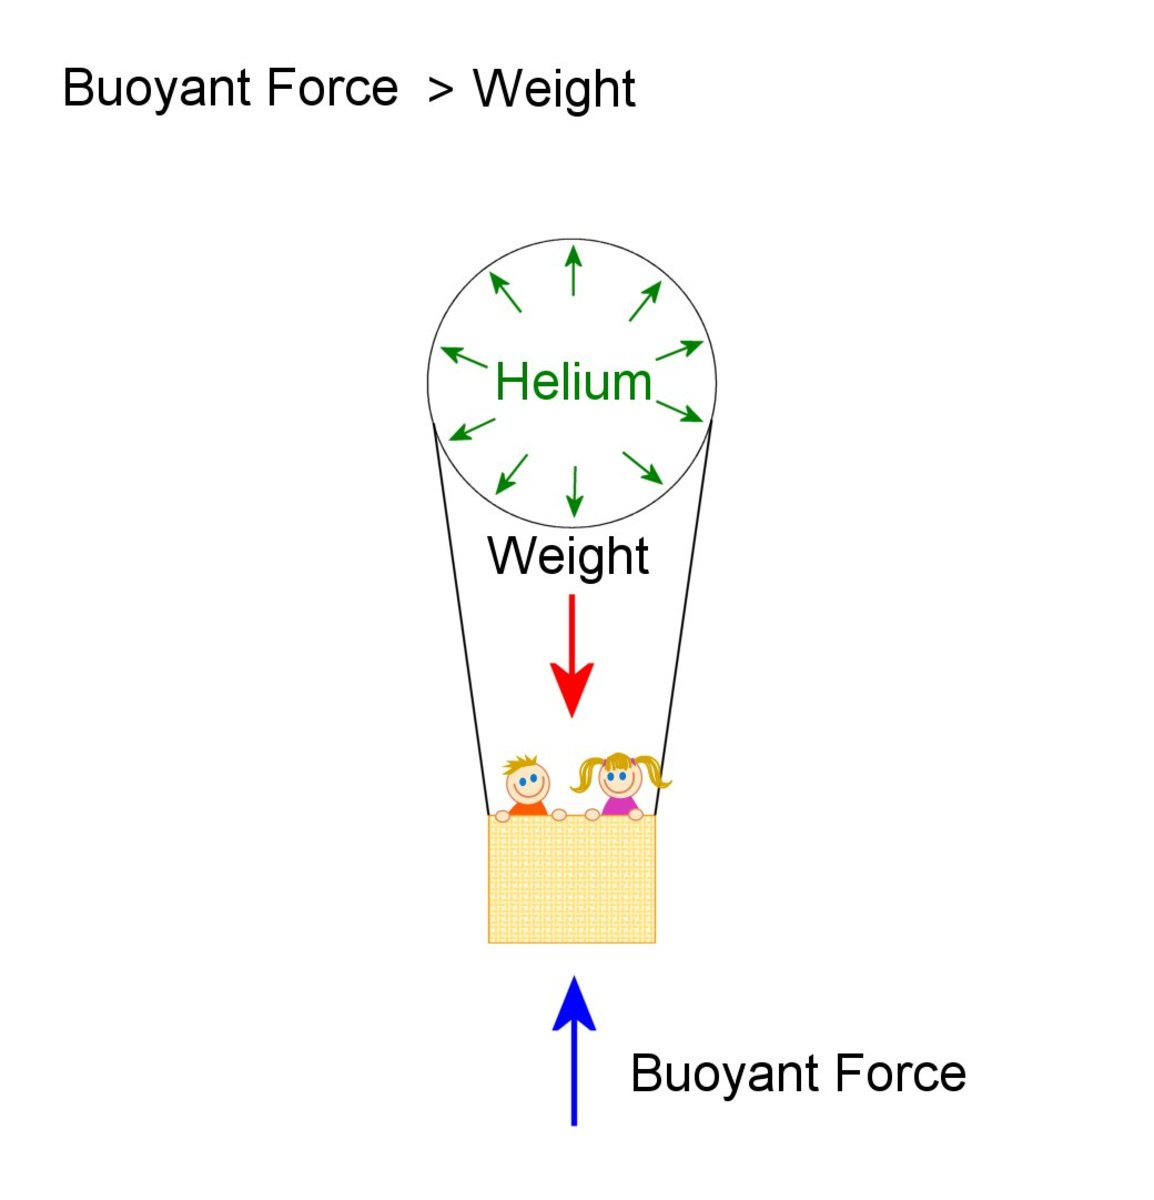 Weight of balloon and helium inside it is less than weight of displaced air, so the buoyant force gives enough lift to make it rise.